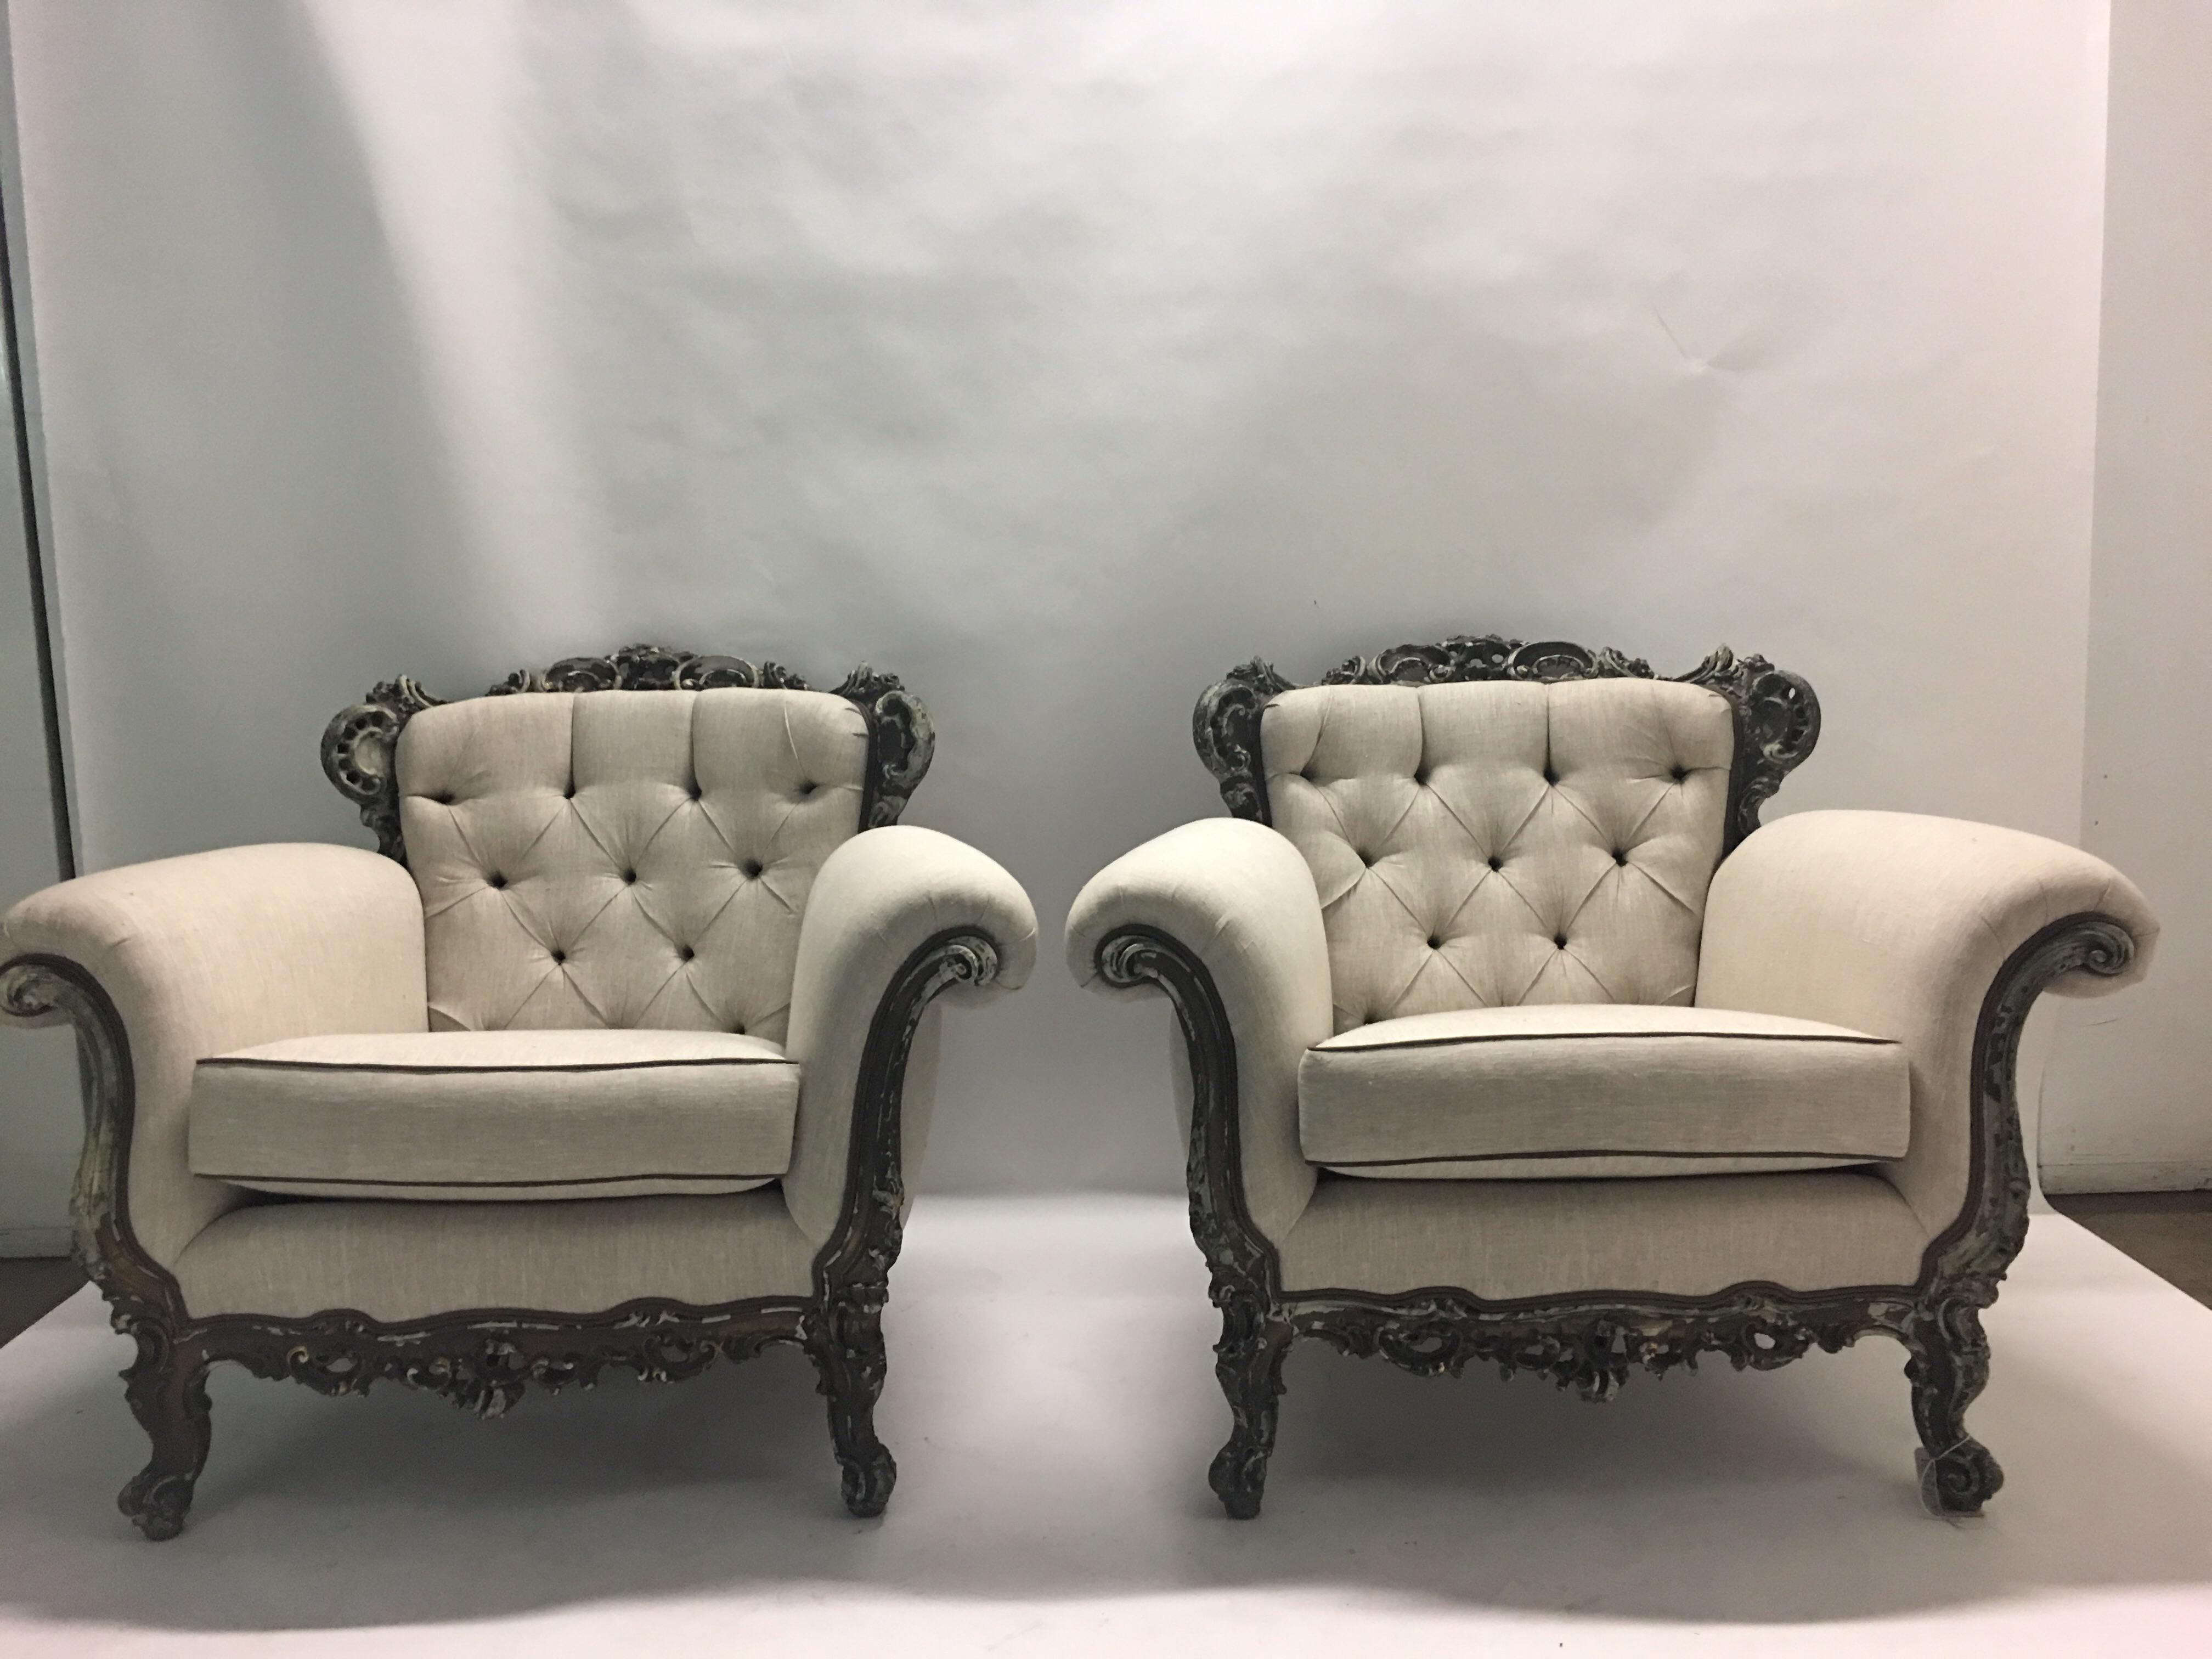 Beau Antique French Victorian Lounge Chairs   A Pair   Image 2 Of 11